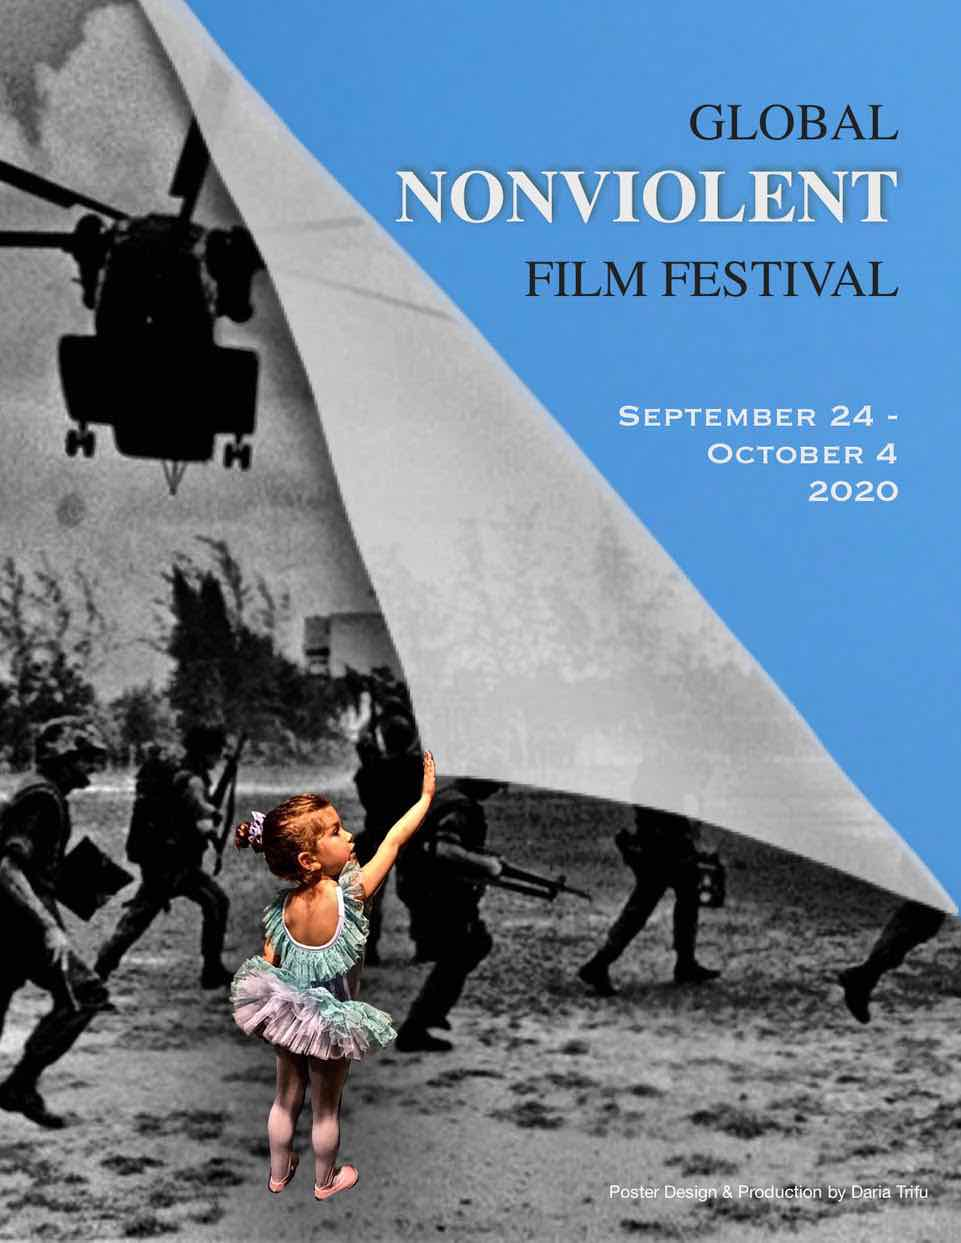 The Global Nonviolent Film Festival demonstrates how nonviolent films are not only capable of great success, but are also in high demand by the public.